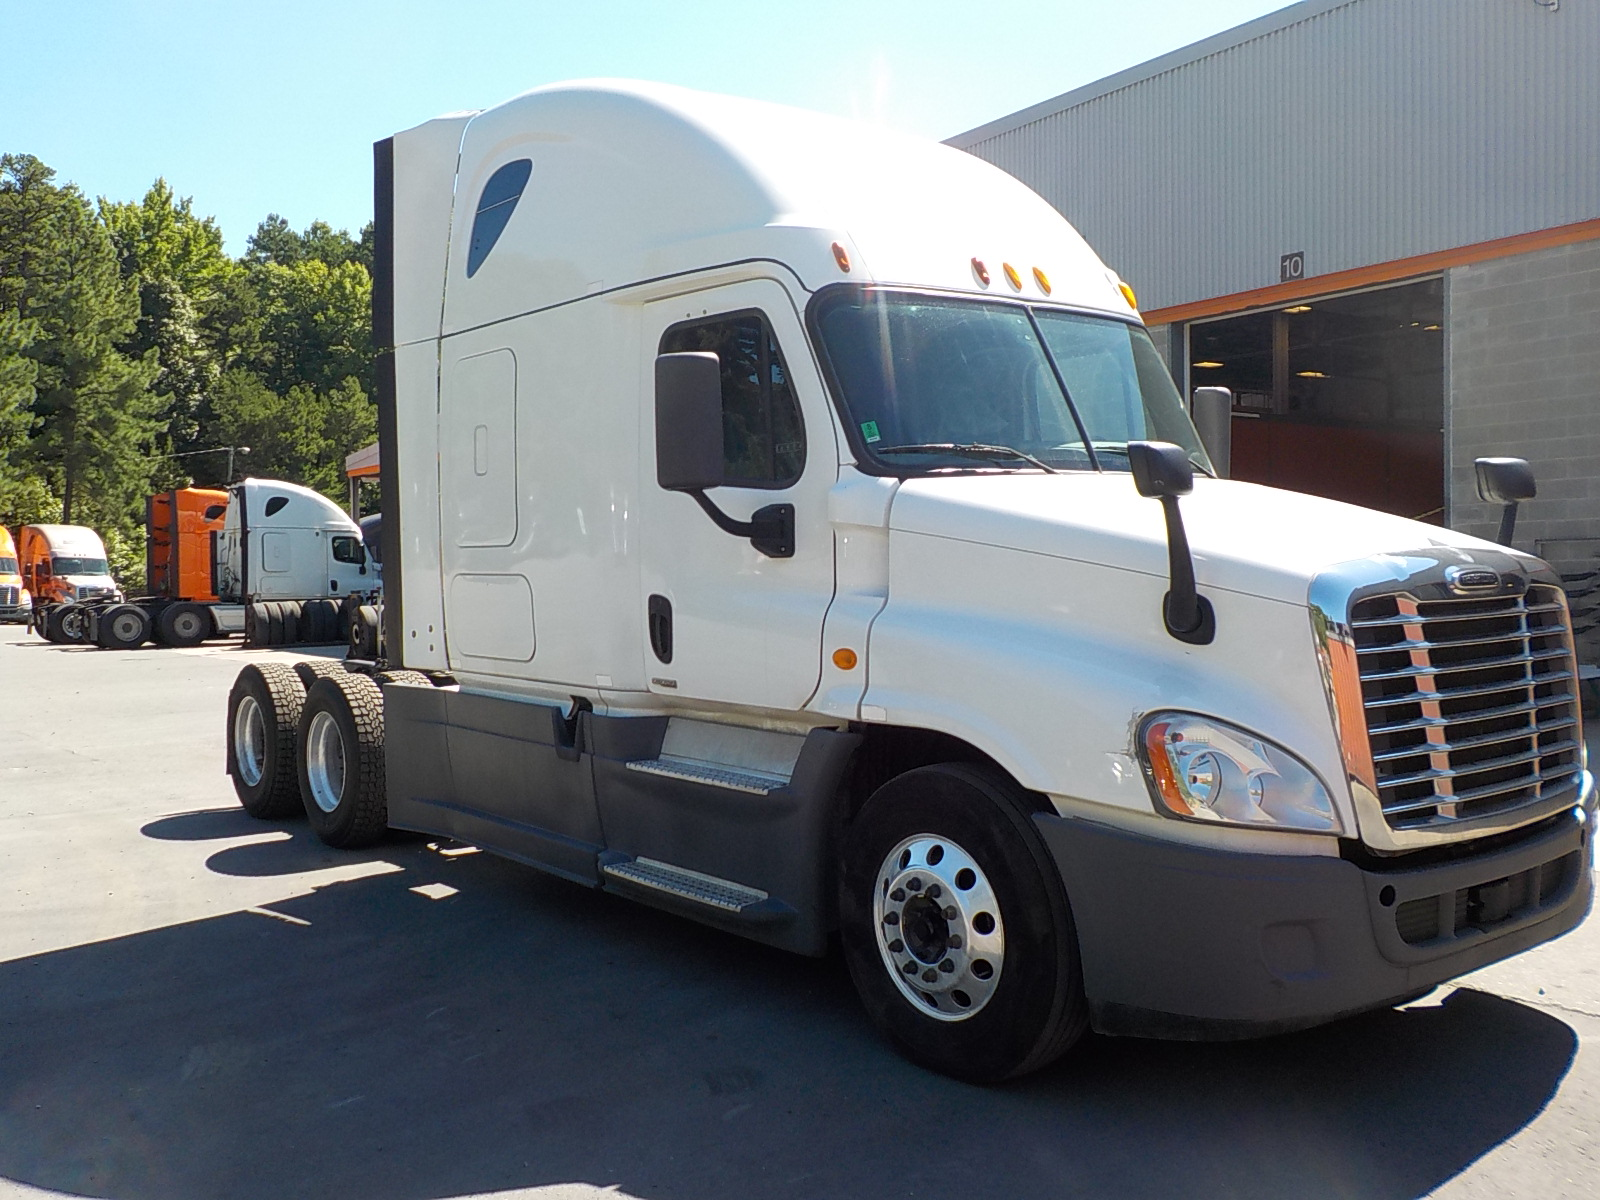 USED 2014 FREIGHTLINER CASCADIA SLEEPER TRUCK #128183